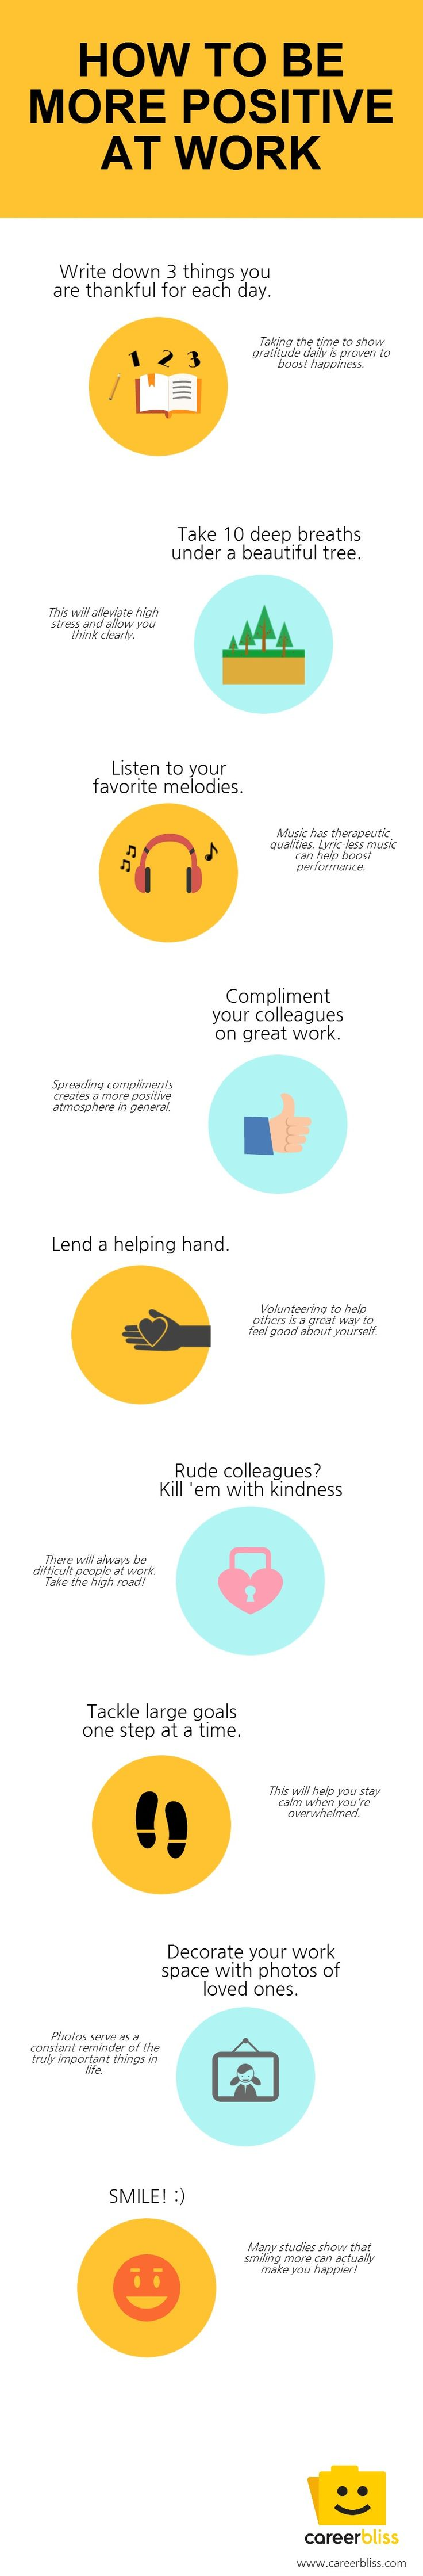 Even if you absolutely adore your job, there are going to be days when you've just had it. It's just the nature of working.  For those unbearable days, use this handy infographic as a quick...